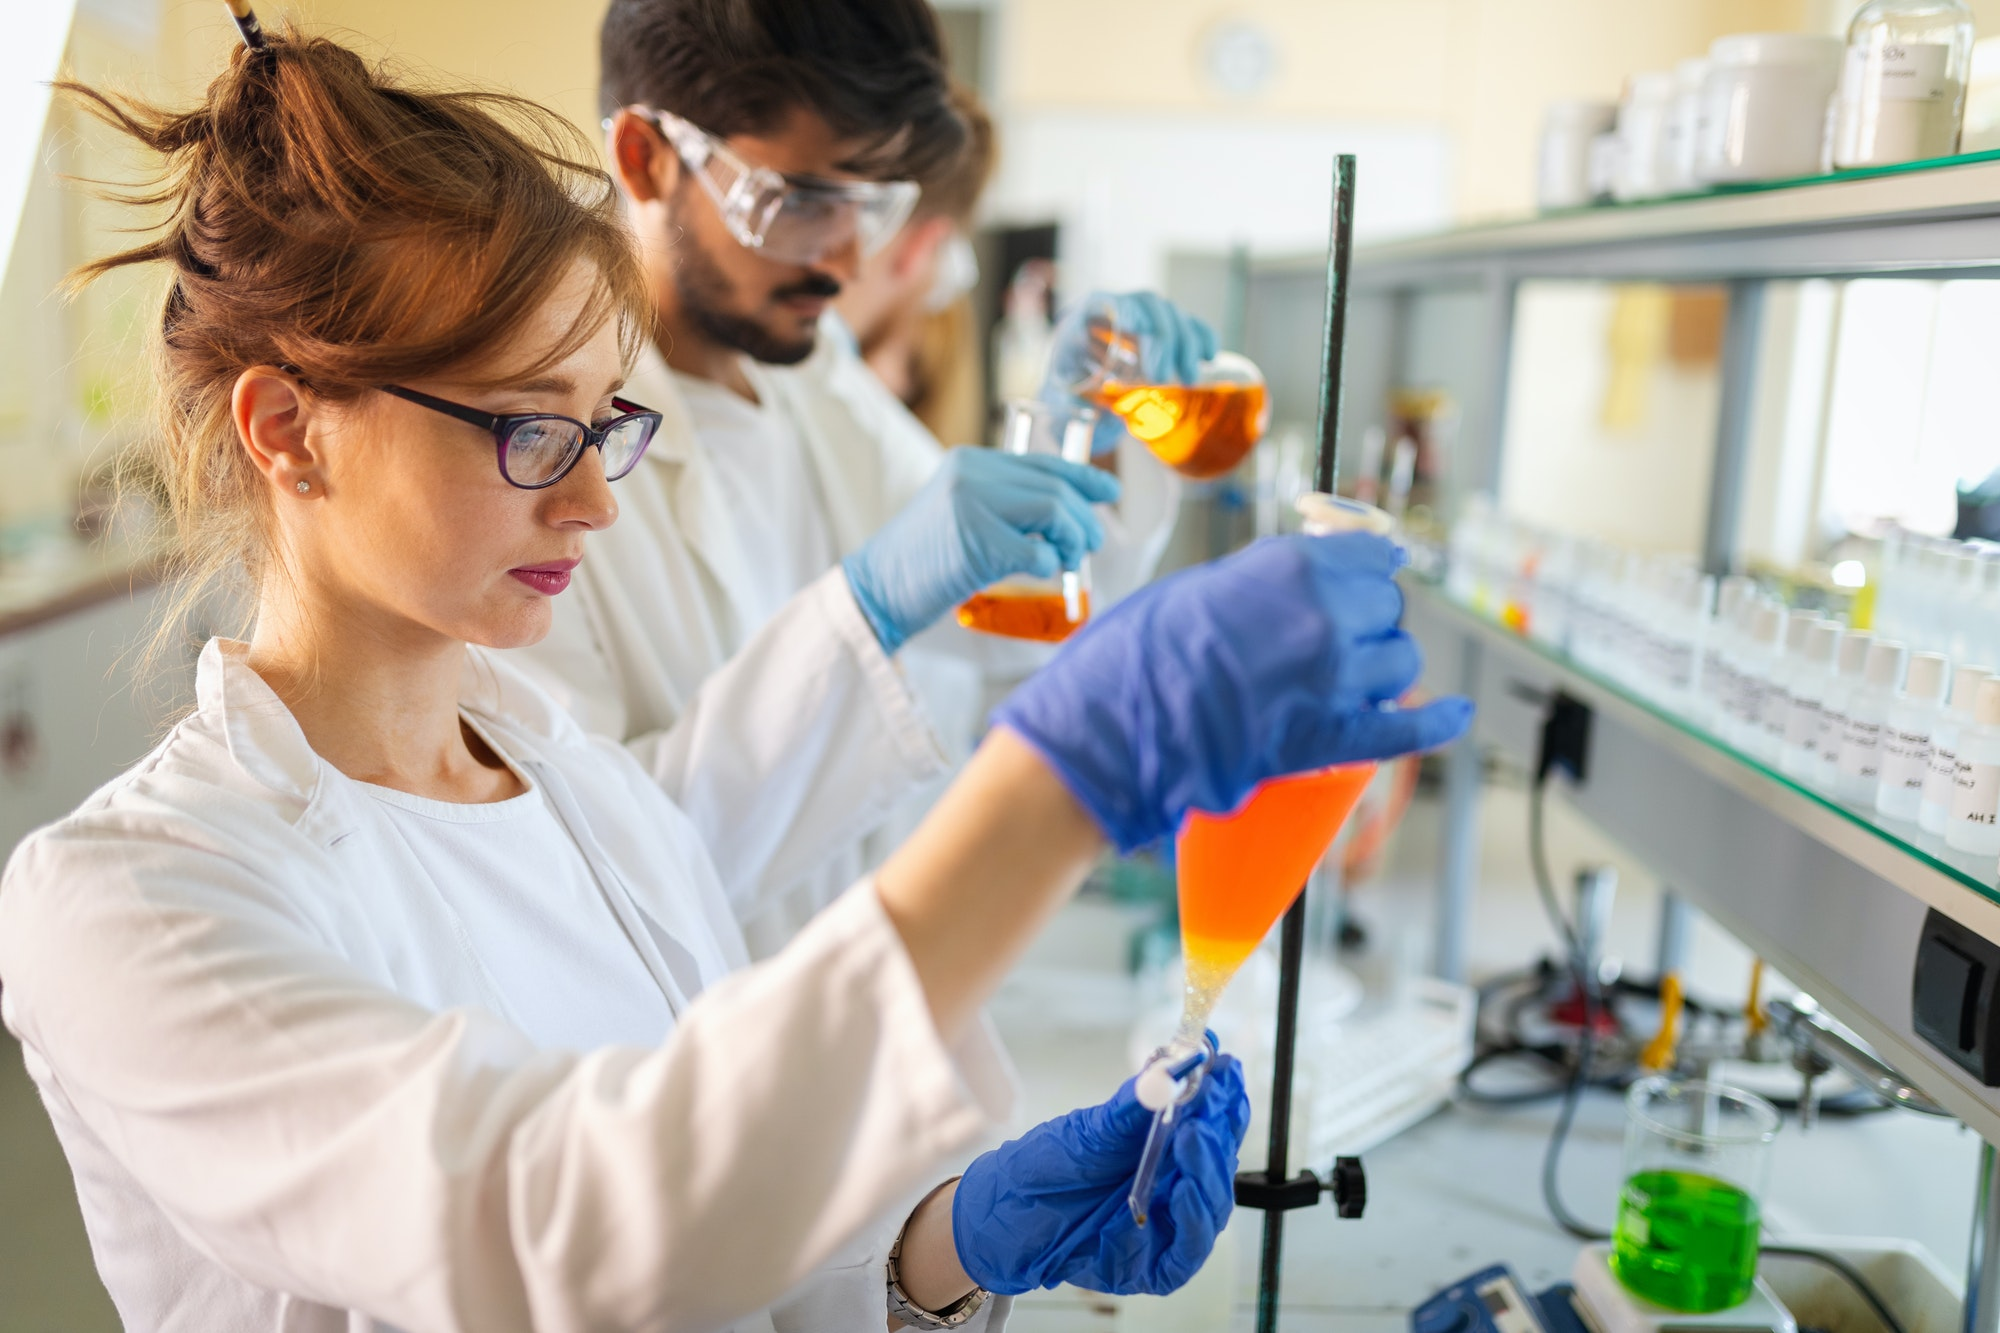 Group of medical research scientists collectively working in laboratory